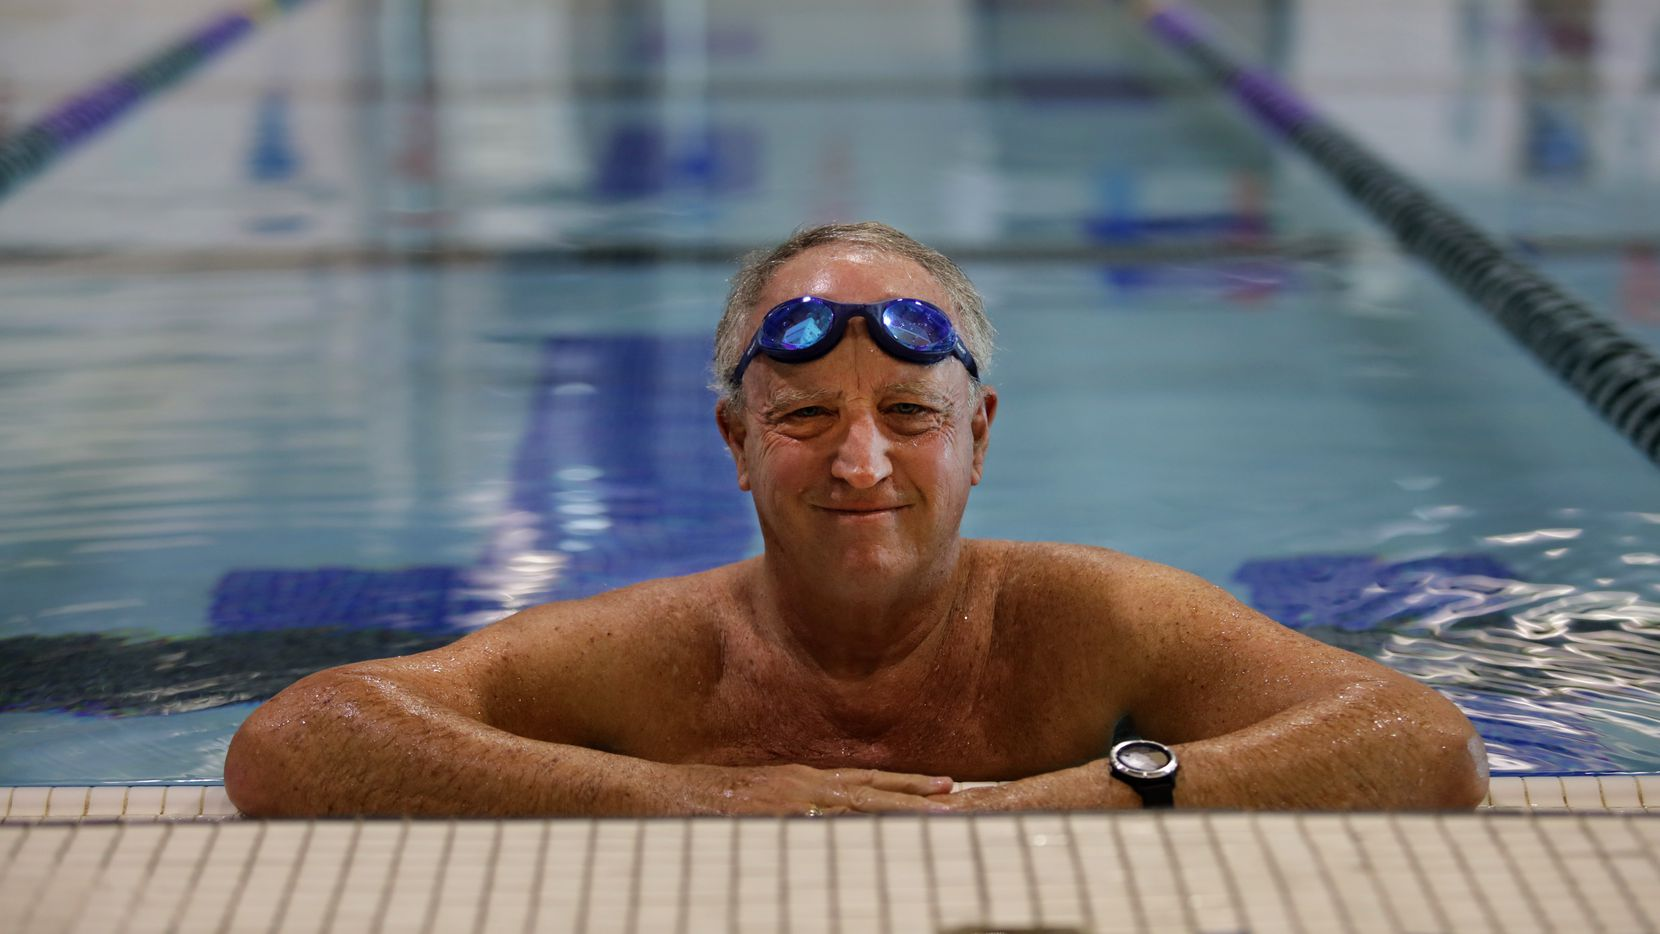 Peter Goodspeed, 70, of Richardson turned to swimming to get back into shape after his recovery from prostate cancer made it difficult to continue his running habit.